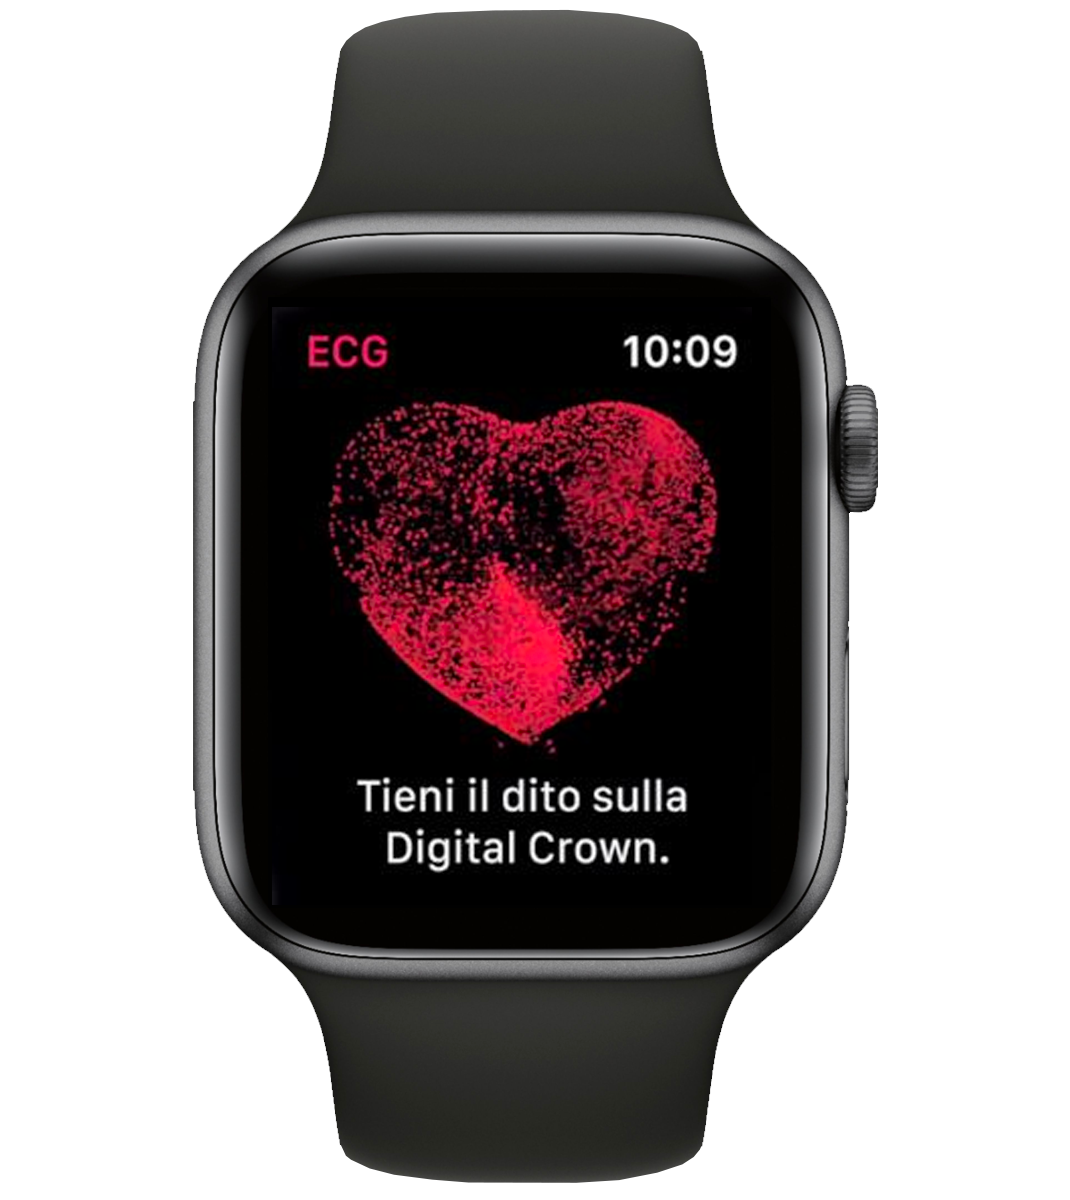 ECG Apple Watch iimagine cuore